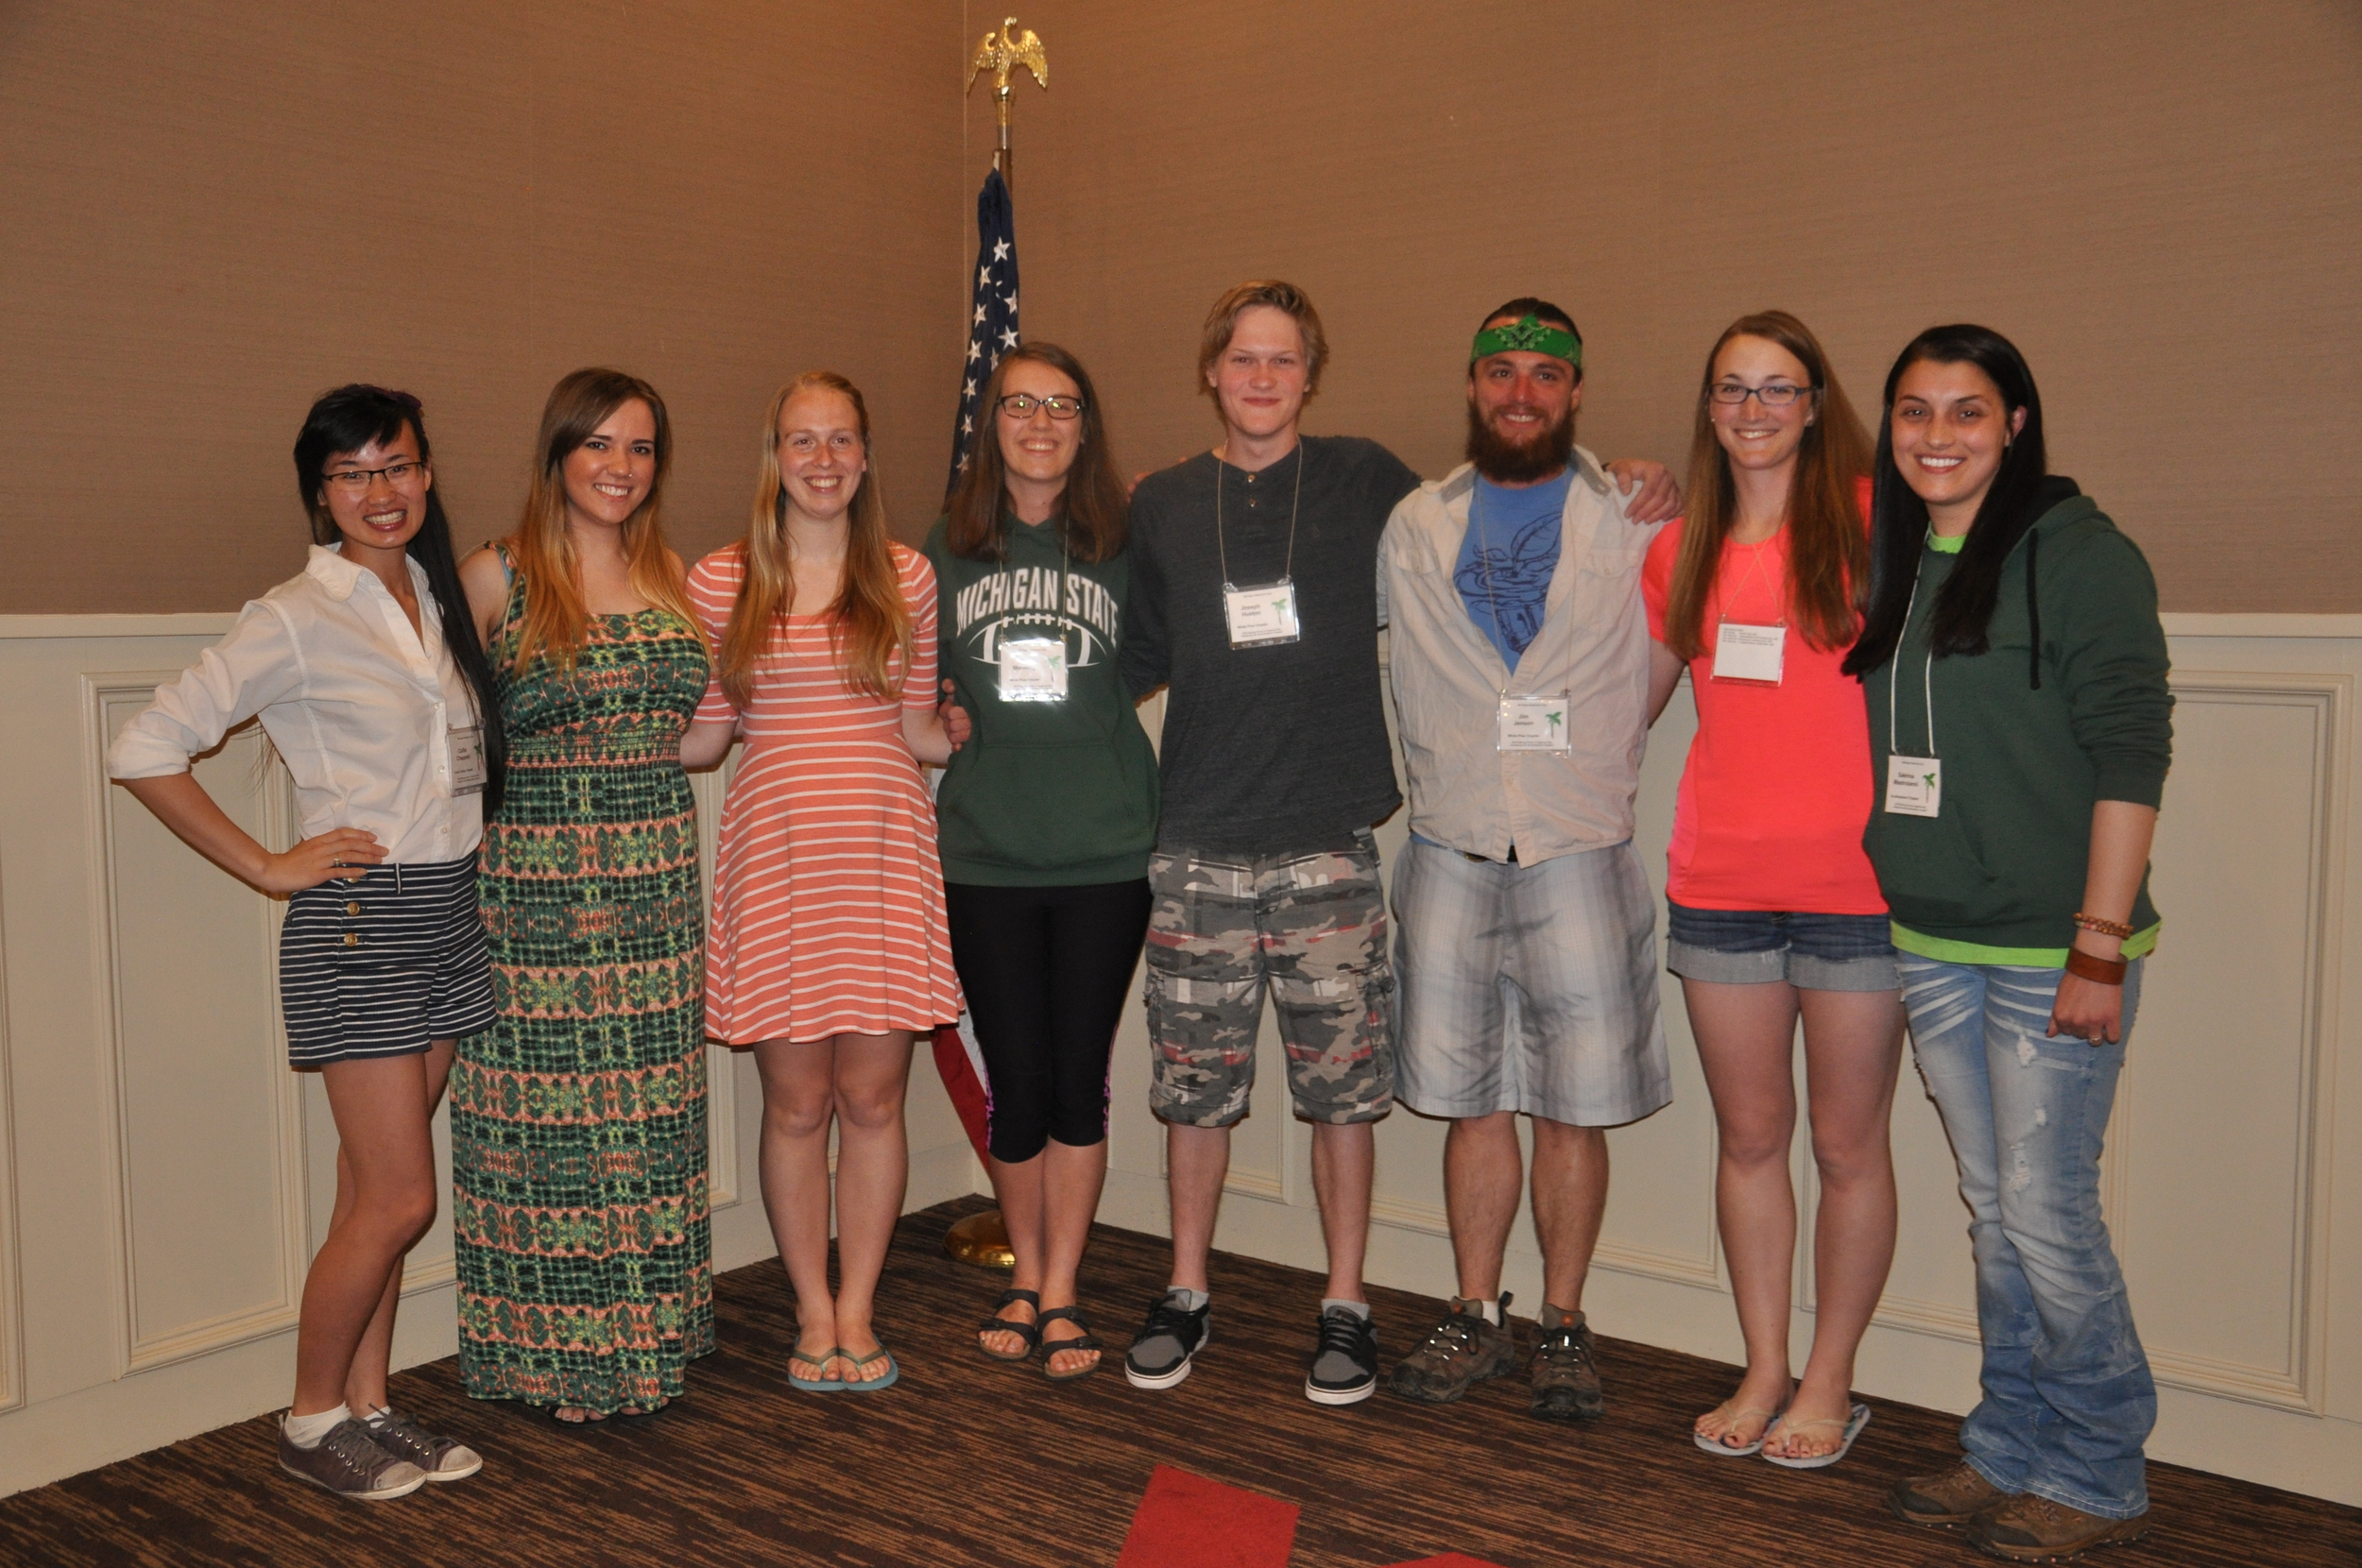 Sponsored students attending the 2015 Spring Foray in Saginaw, MI. Callie Chappell (HVC), Emily Van Staalduinem (WPC), Cortney Benson (WPC), Katie Manning (non-sponsored), Joseph Huston (WPC), Jim Jensen (WPC), Mary Martin (SEC), and Sabrina Mastroianni (SEC)